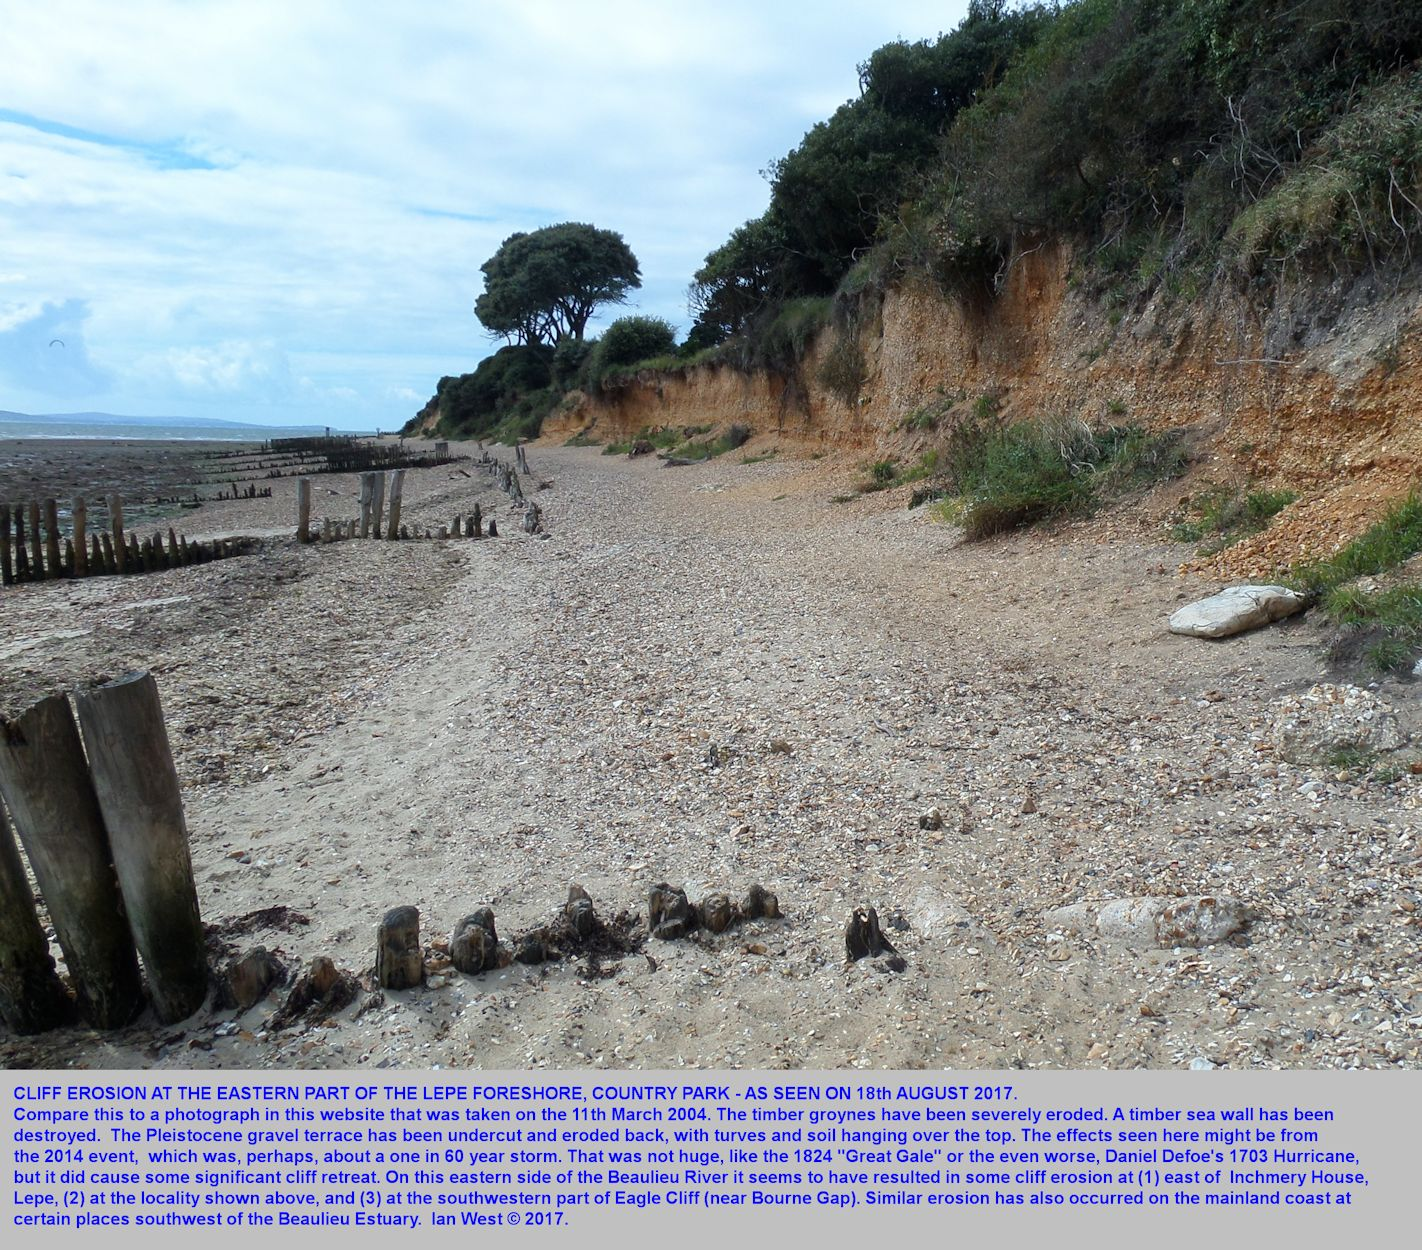 Evidence of recent erosion at part of Lepe Beach, Hampshire, in front of the Country Park and east of the beach car park and facilities, 18th August 2017